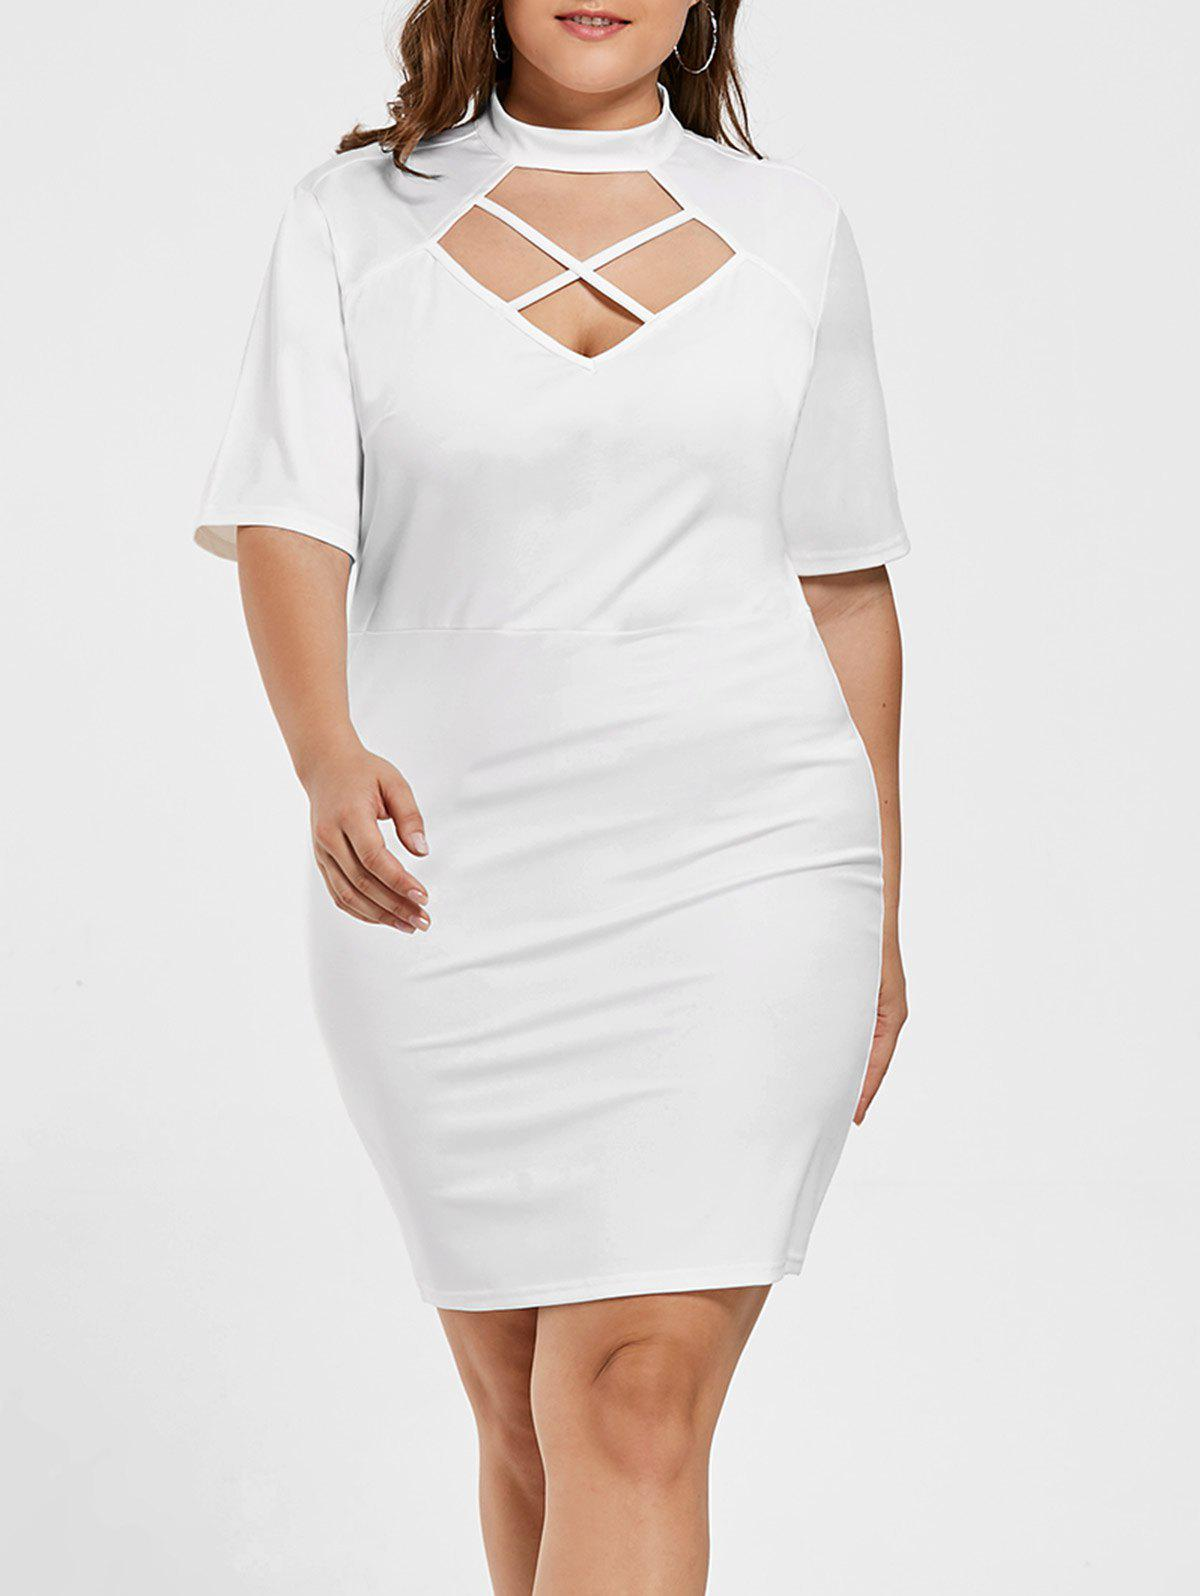 08ee7c84a8c 15% OFF  Criss Cross Bodycon Plus Size Fitted Dress